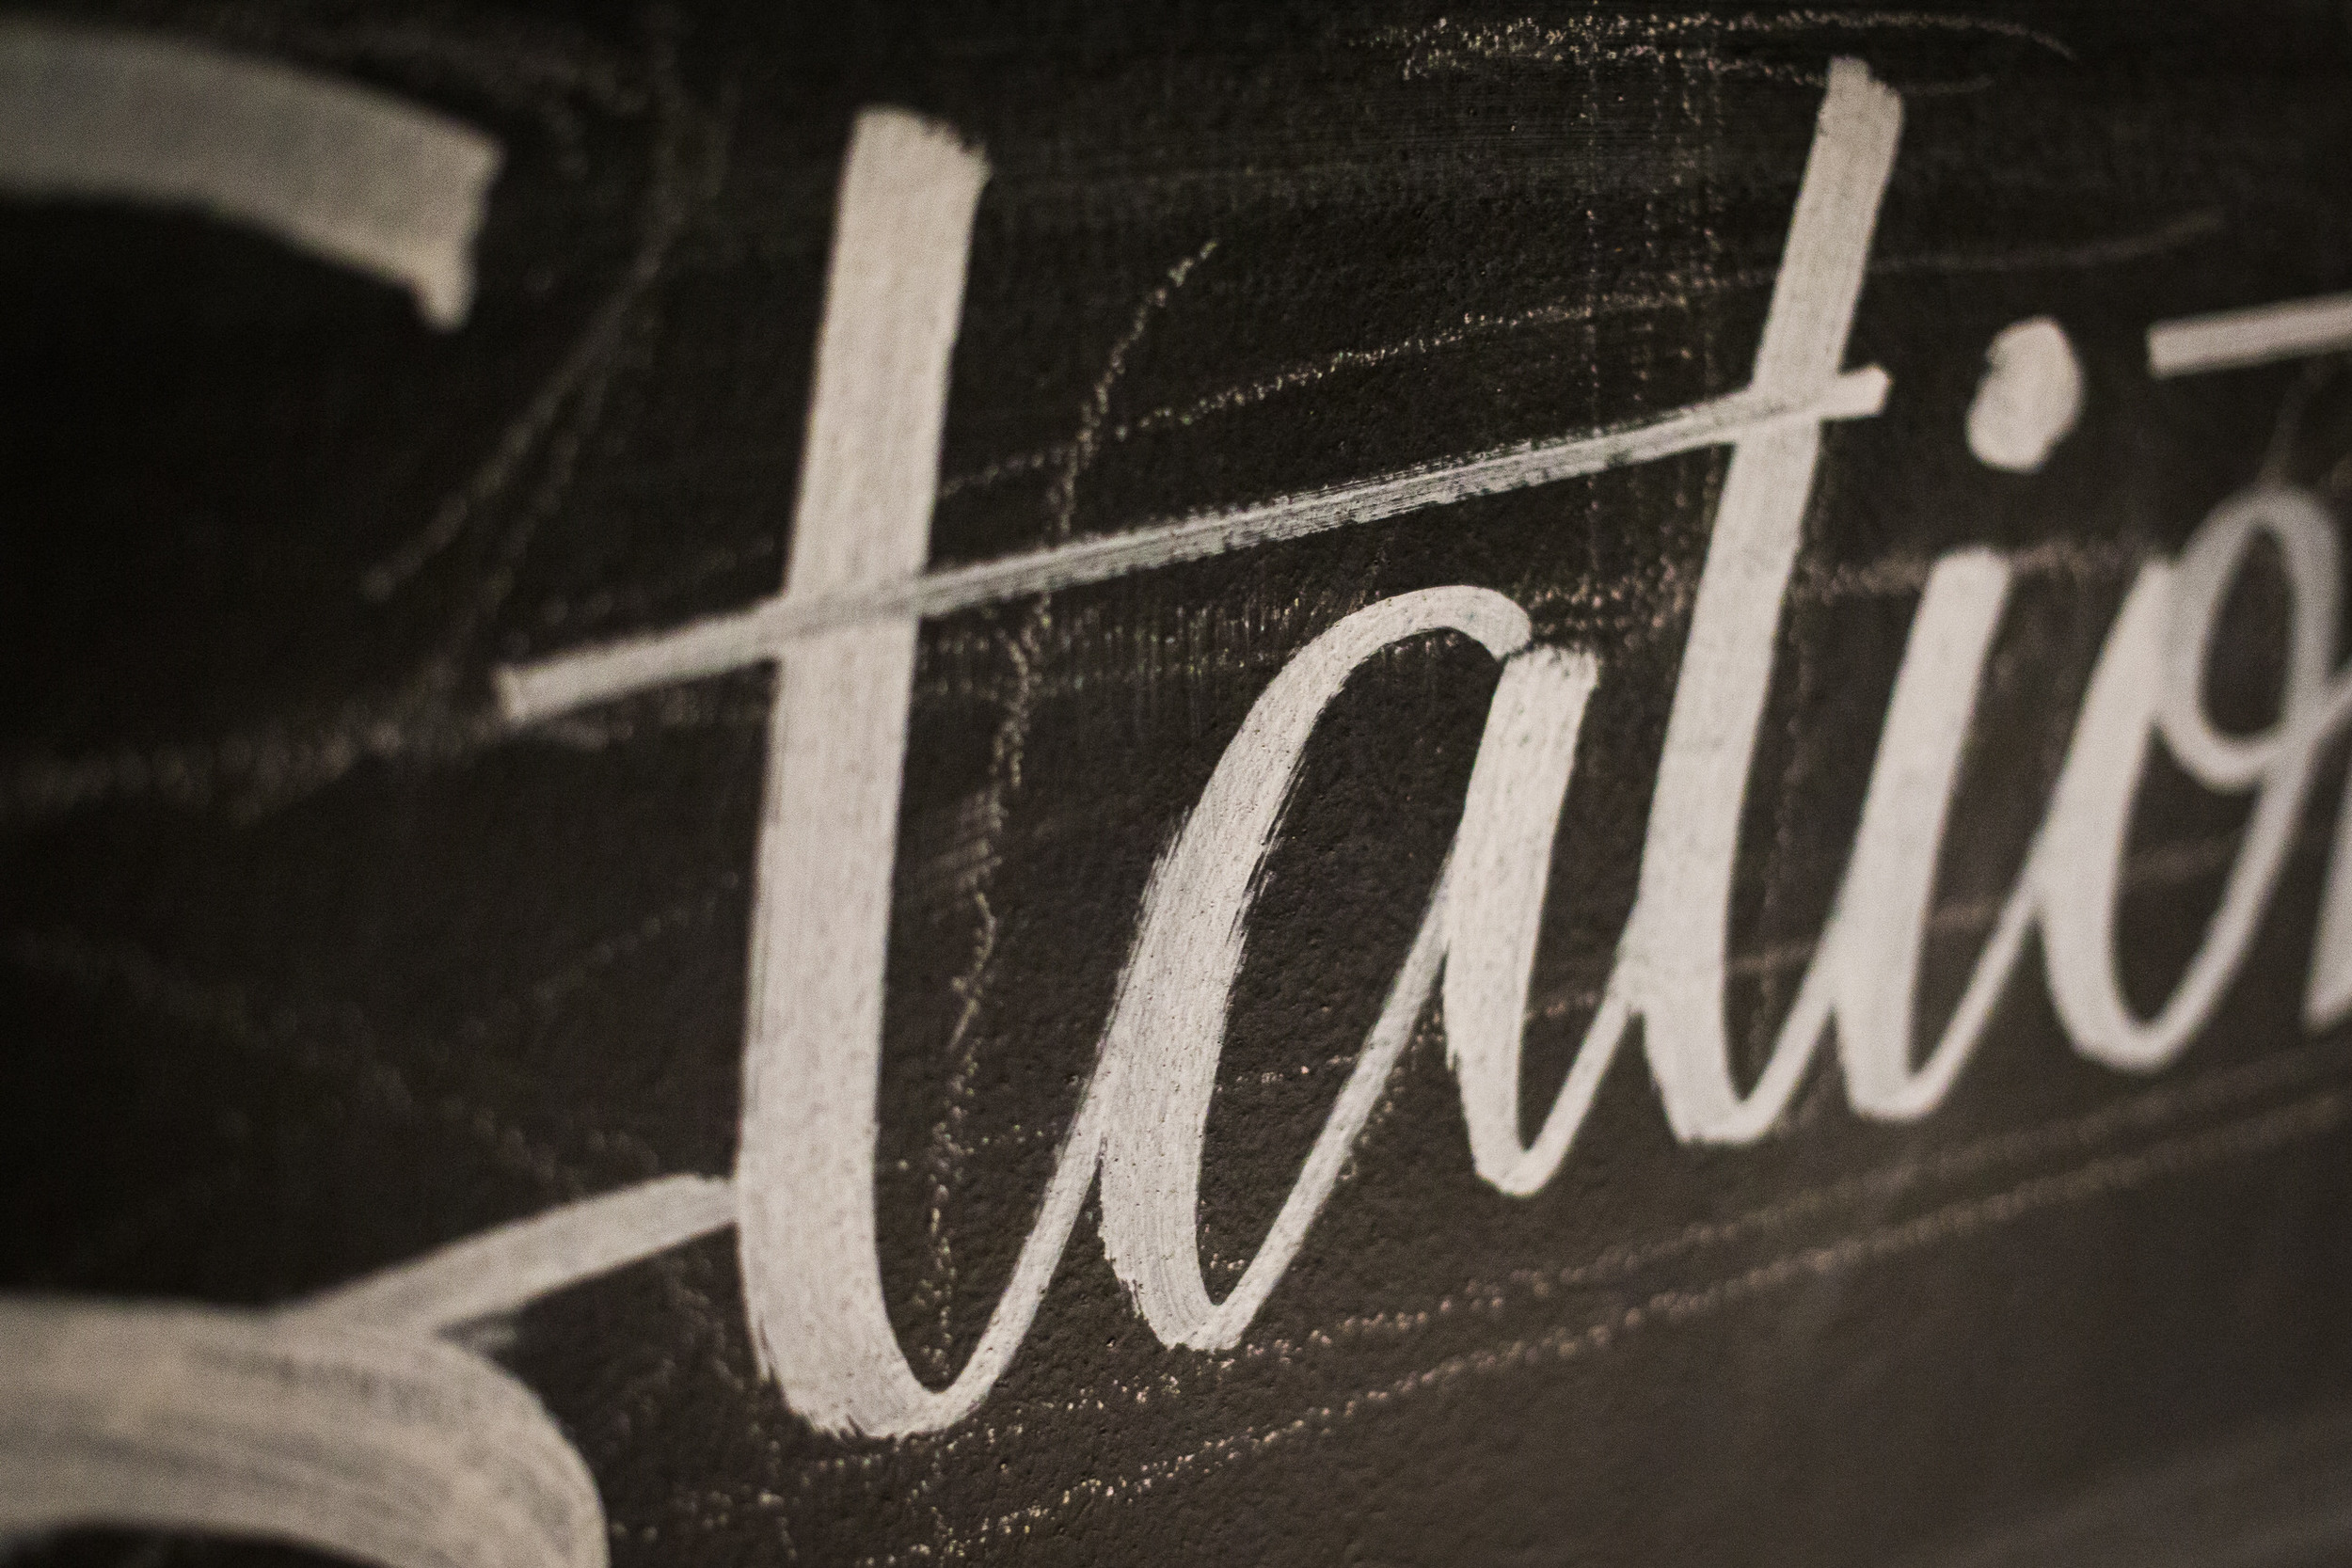 julius-tanag-lettering-typography-chalkboards-sequoia-productions-002.jpg